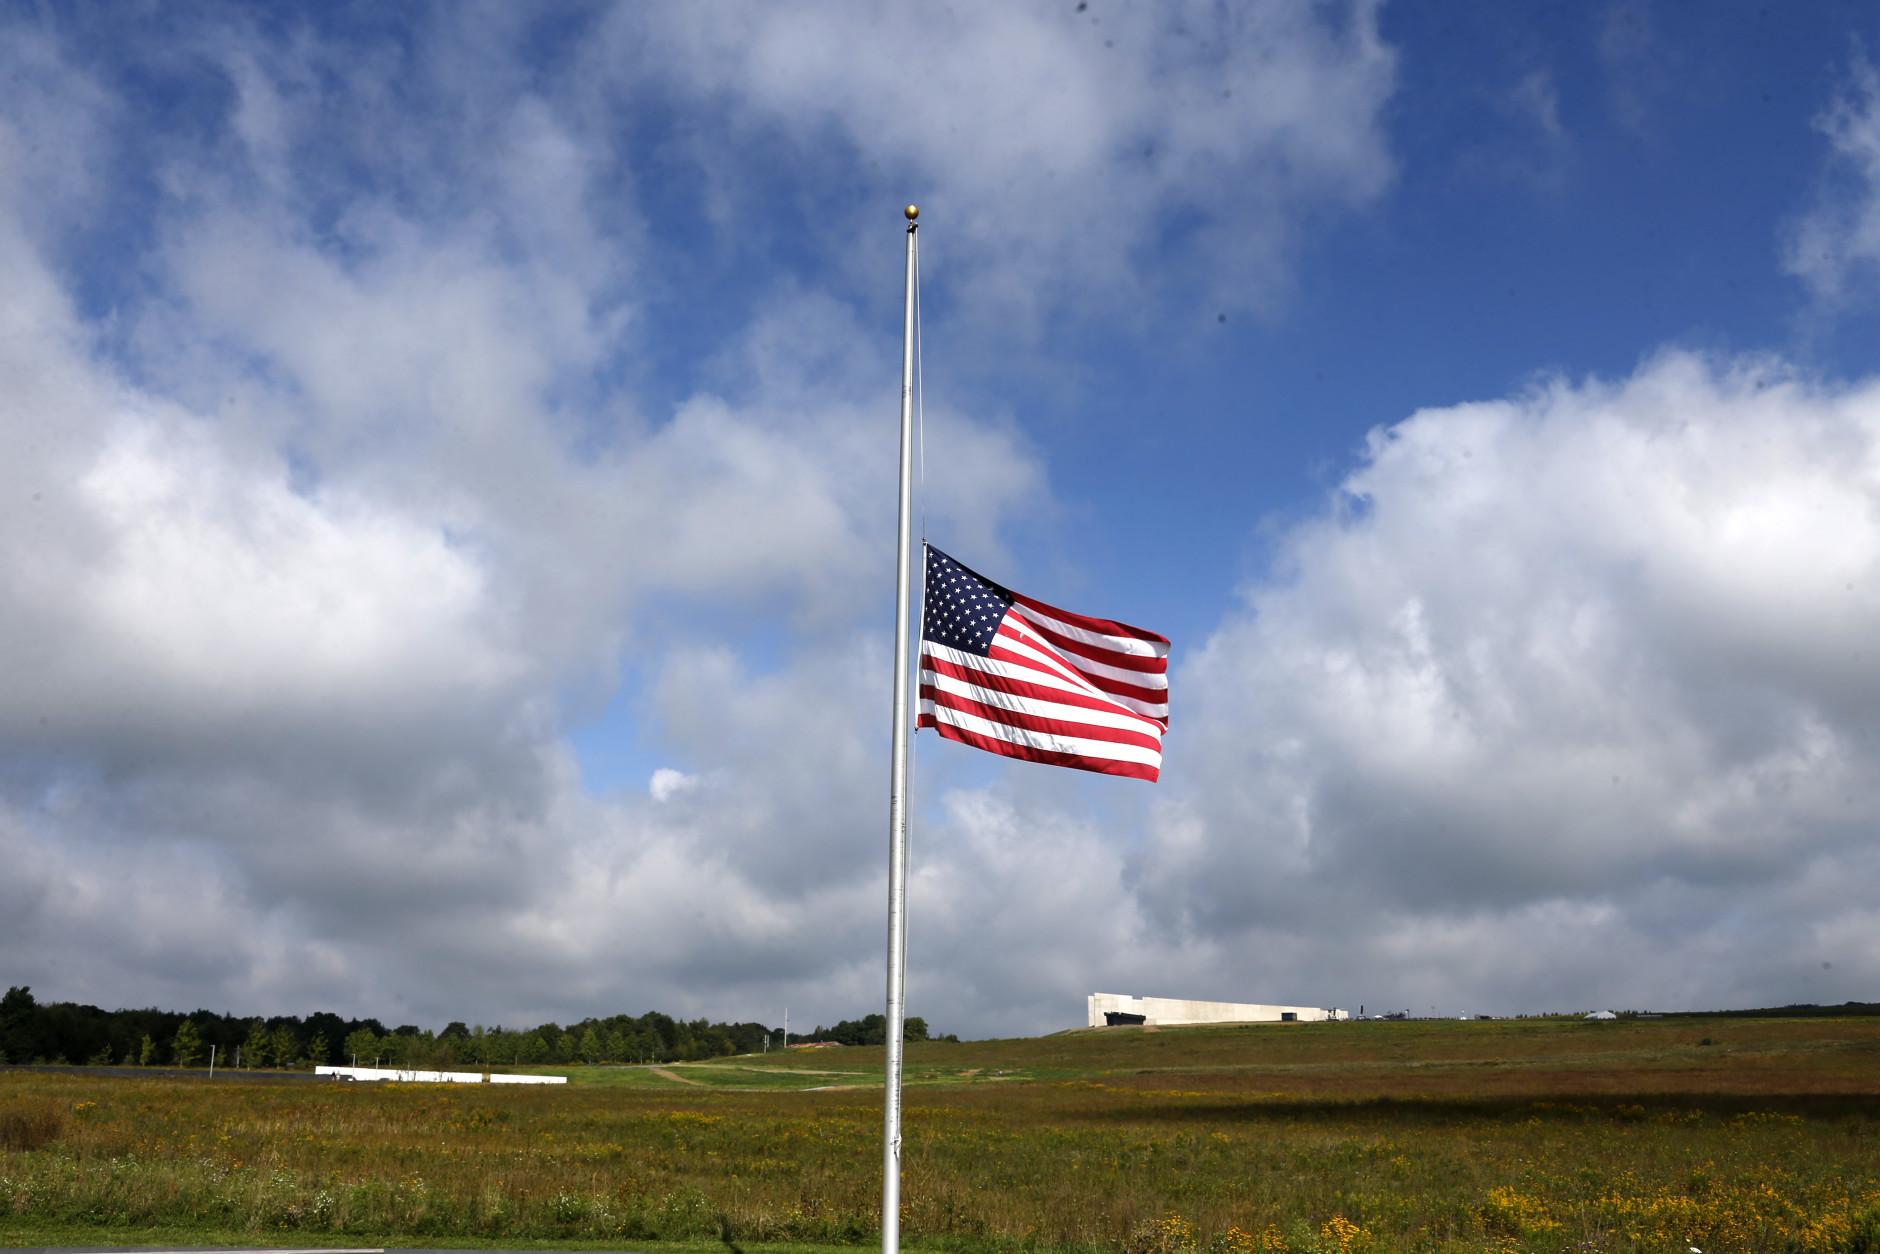 A flag flies at half staff at the Flight 93 National Memorial in Shanksville, Pa, Friday, Sept. 11, 2015, as the nation marks the 14th anniversary of the Sept. 11 attacks. At lower left is the Wall of Names,and upper right is the Flight 93 National Memorial Visitors Center. (AP Photo/Gene J. Puskar)